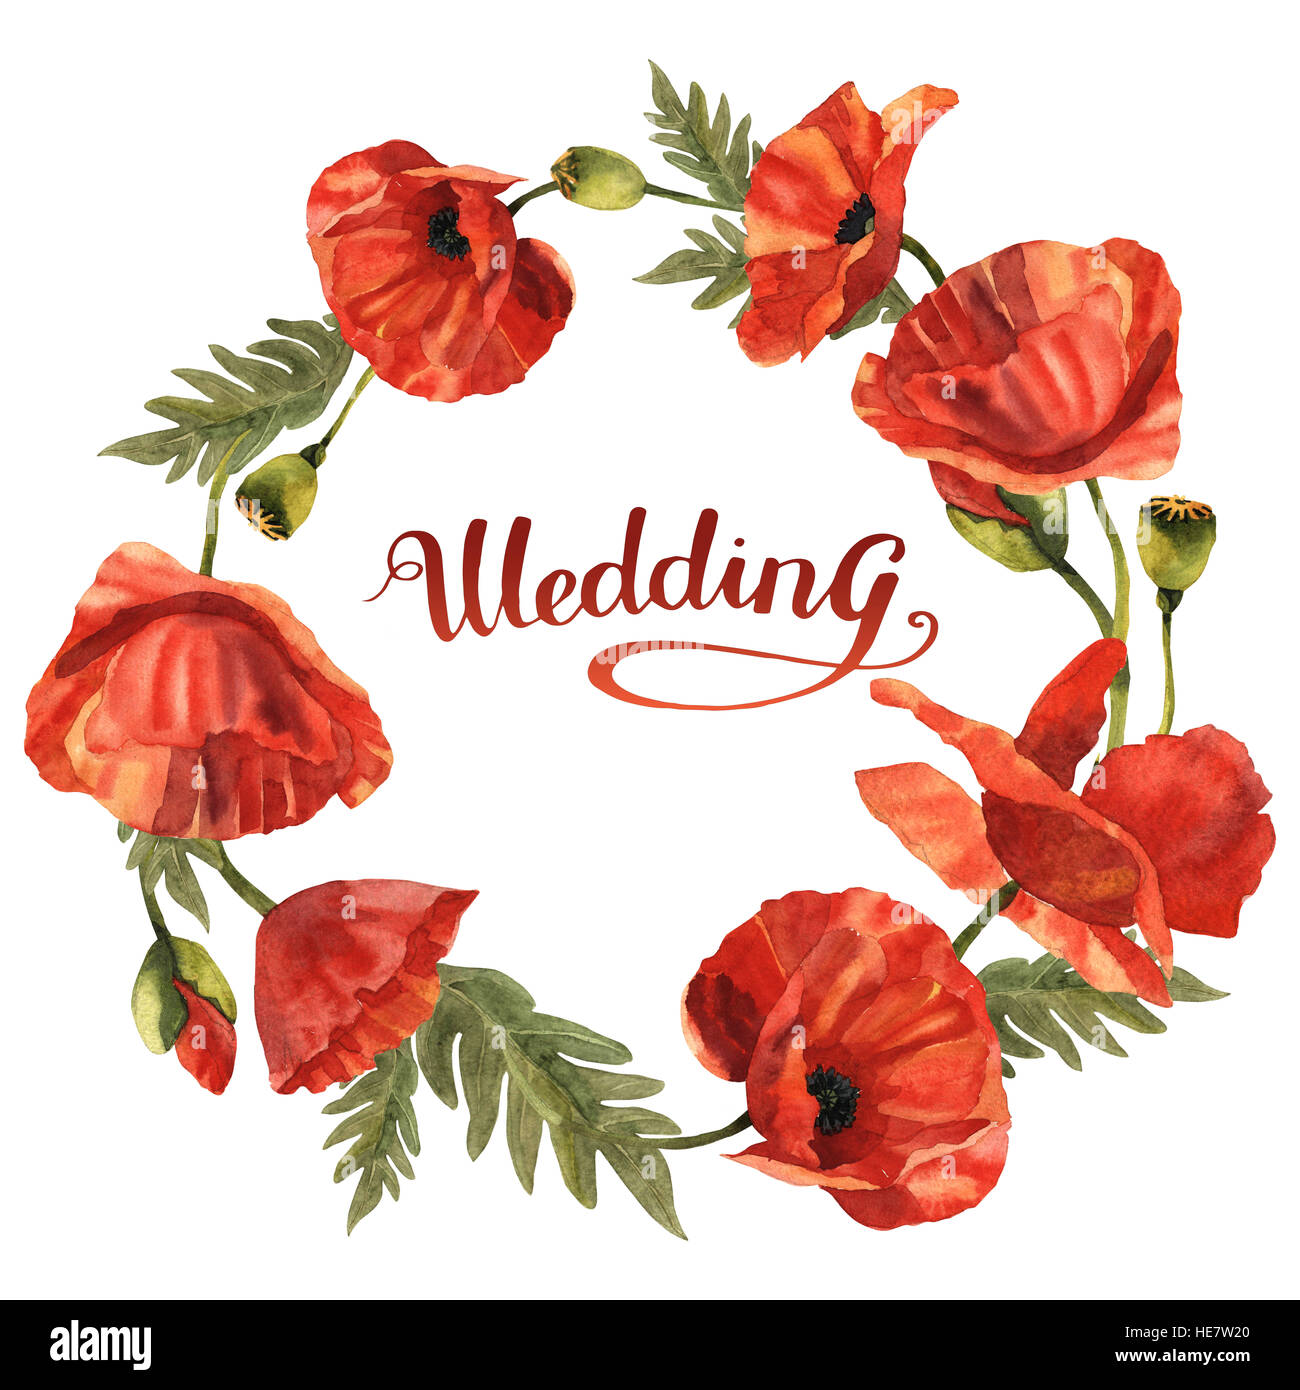 Wildflower Poppy Flower Wreath In A Watercolor Style Isolated Stock